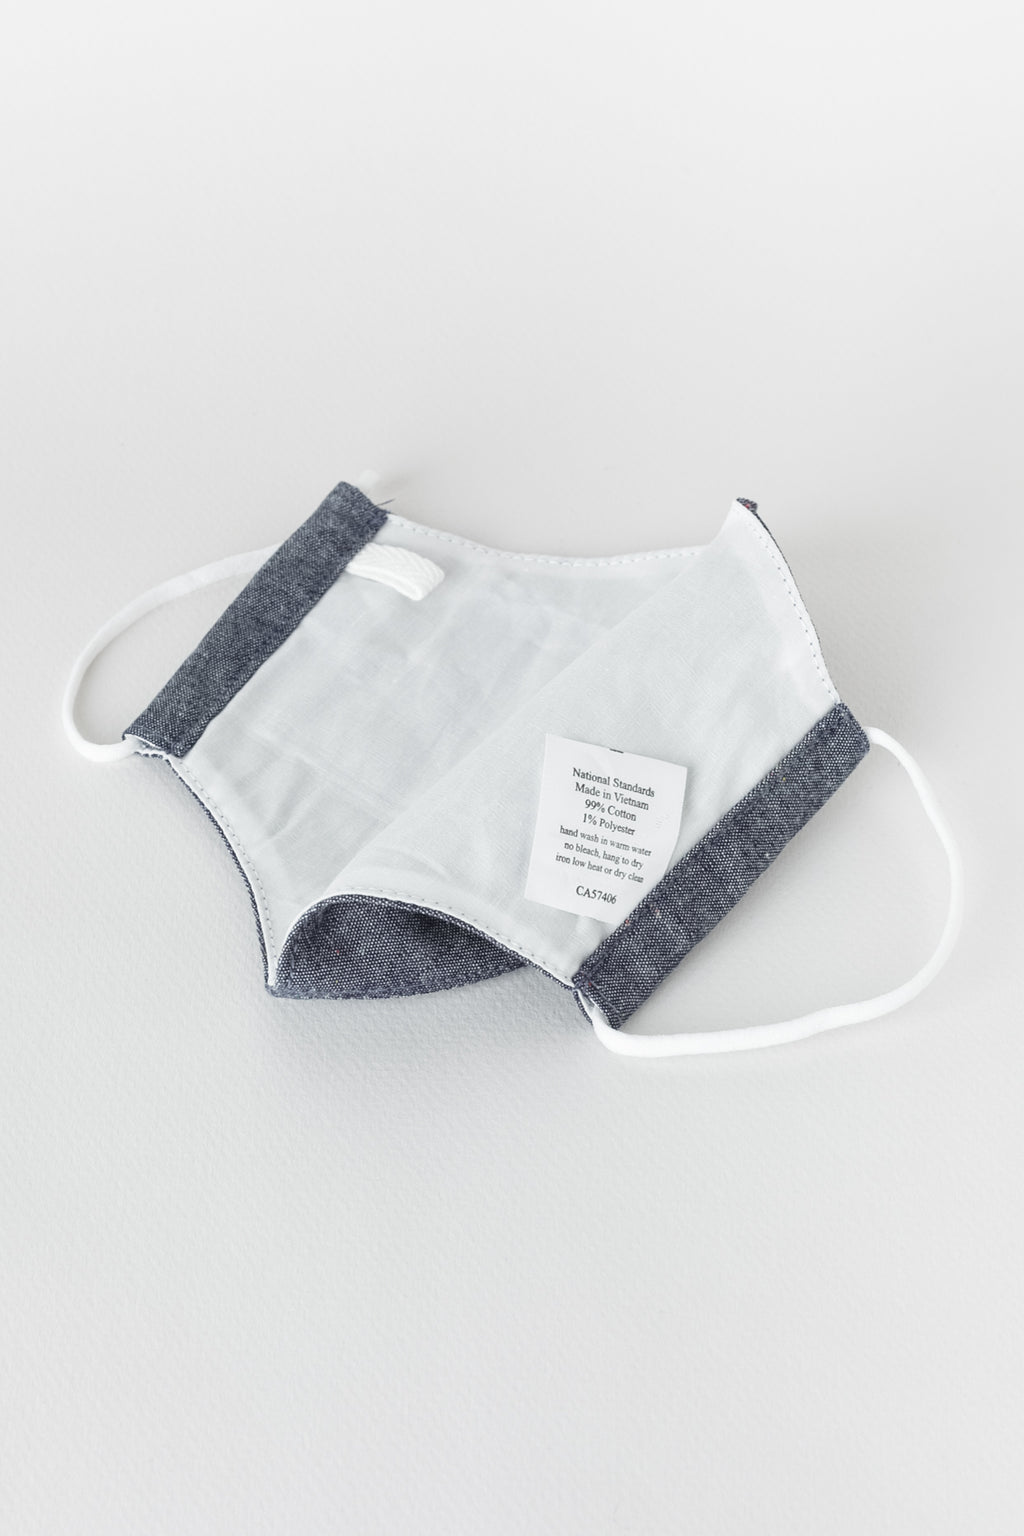 Japanese Colour Nep Chambray Face Mask in Navy 02